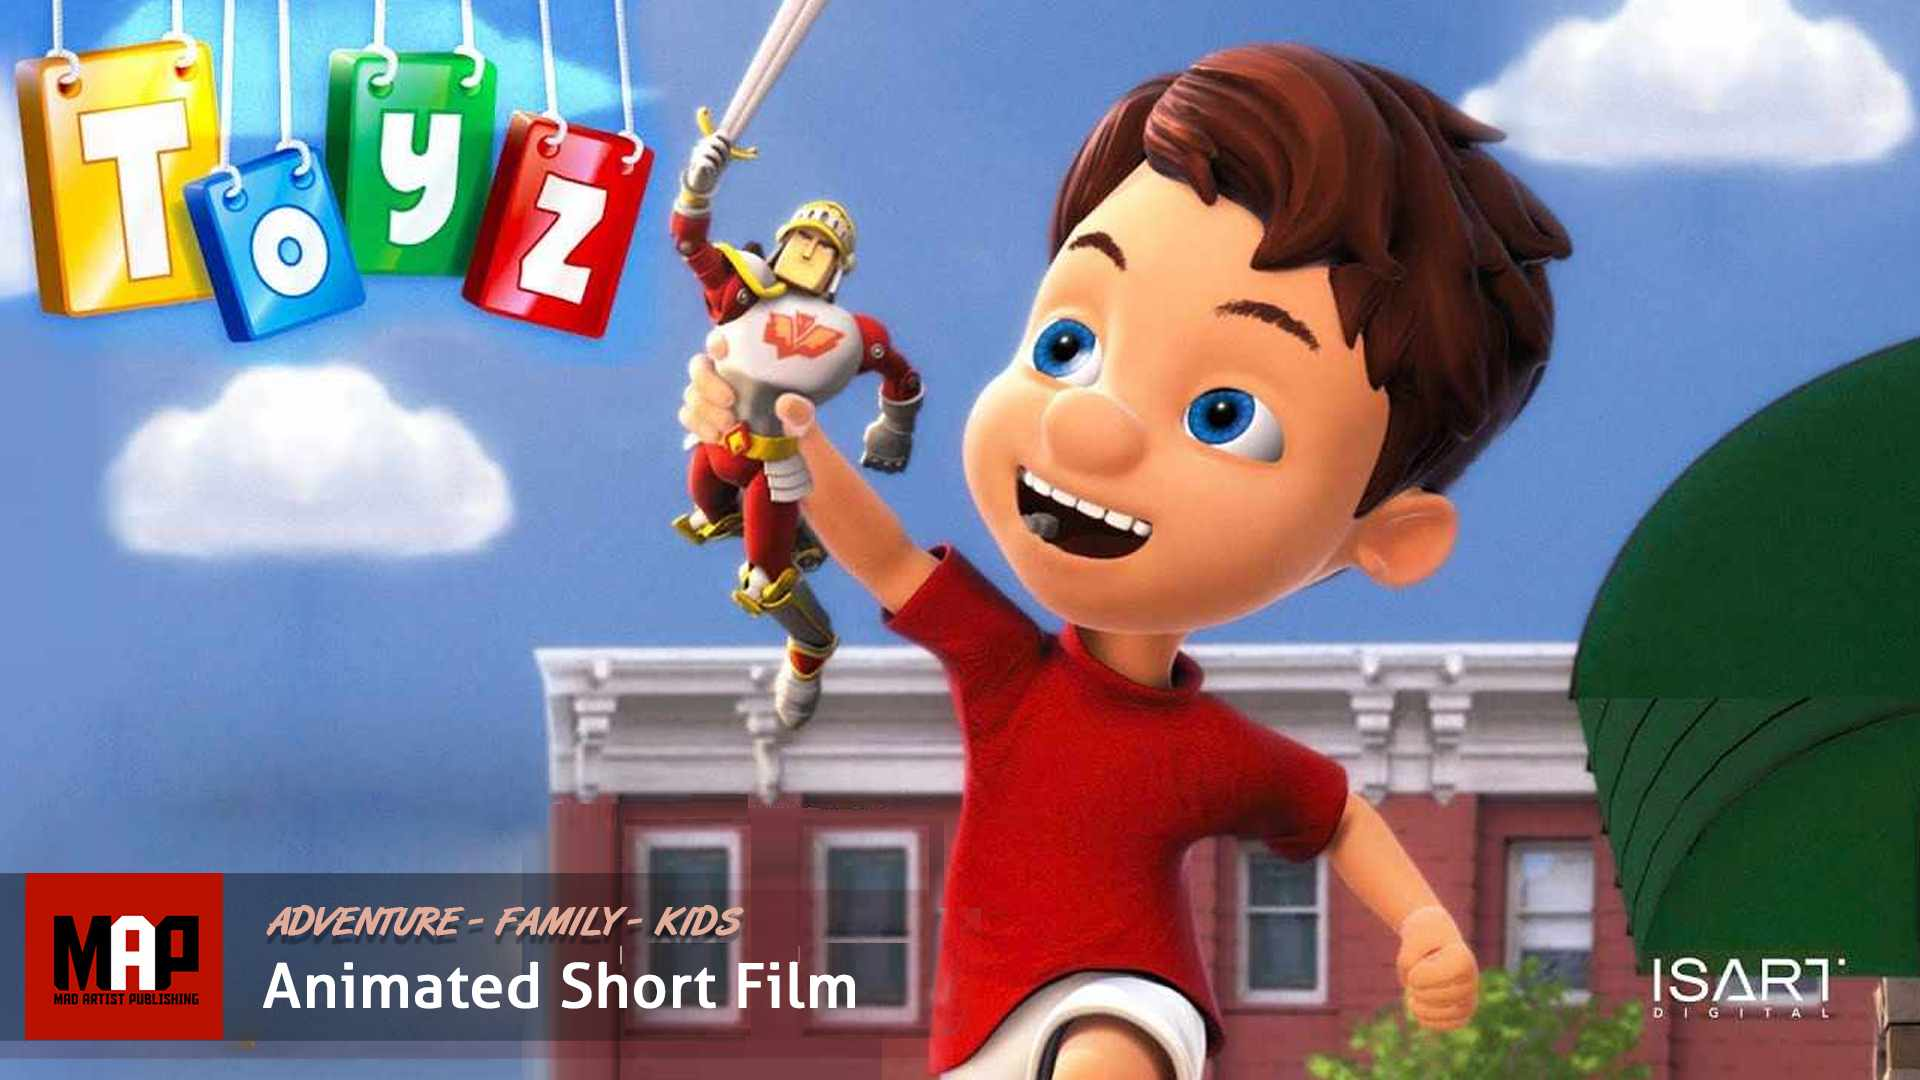 Fantastic CGI 3d Animated Short Film ** TOYZ ** Cute Family Adventure Cartoon for Kids by IsArt Team